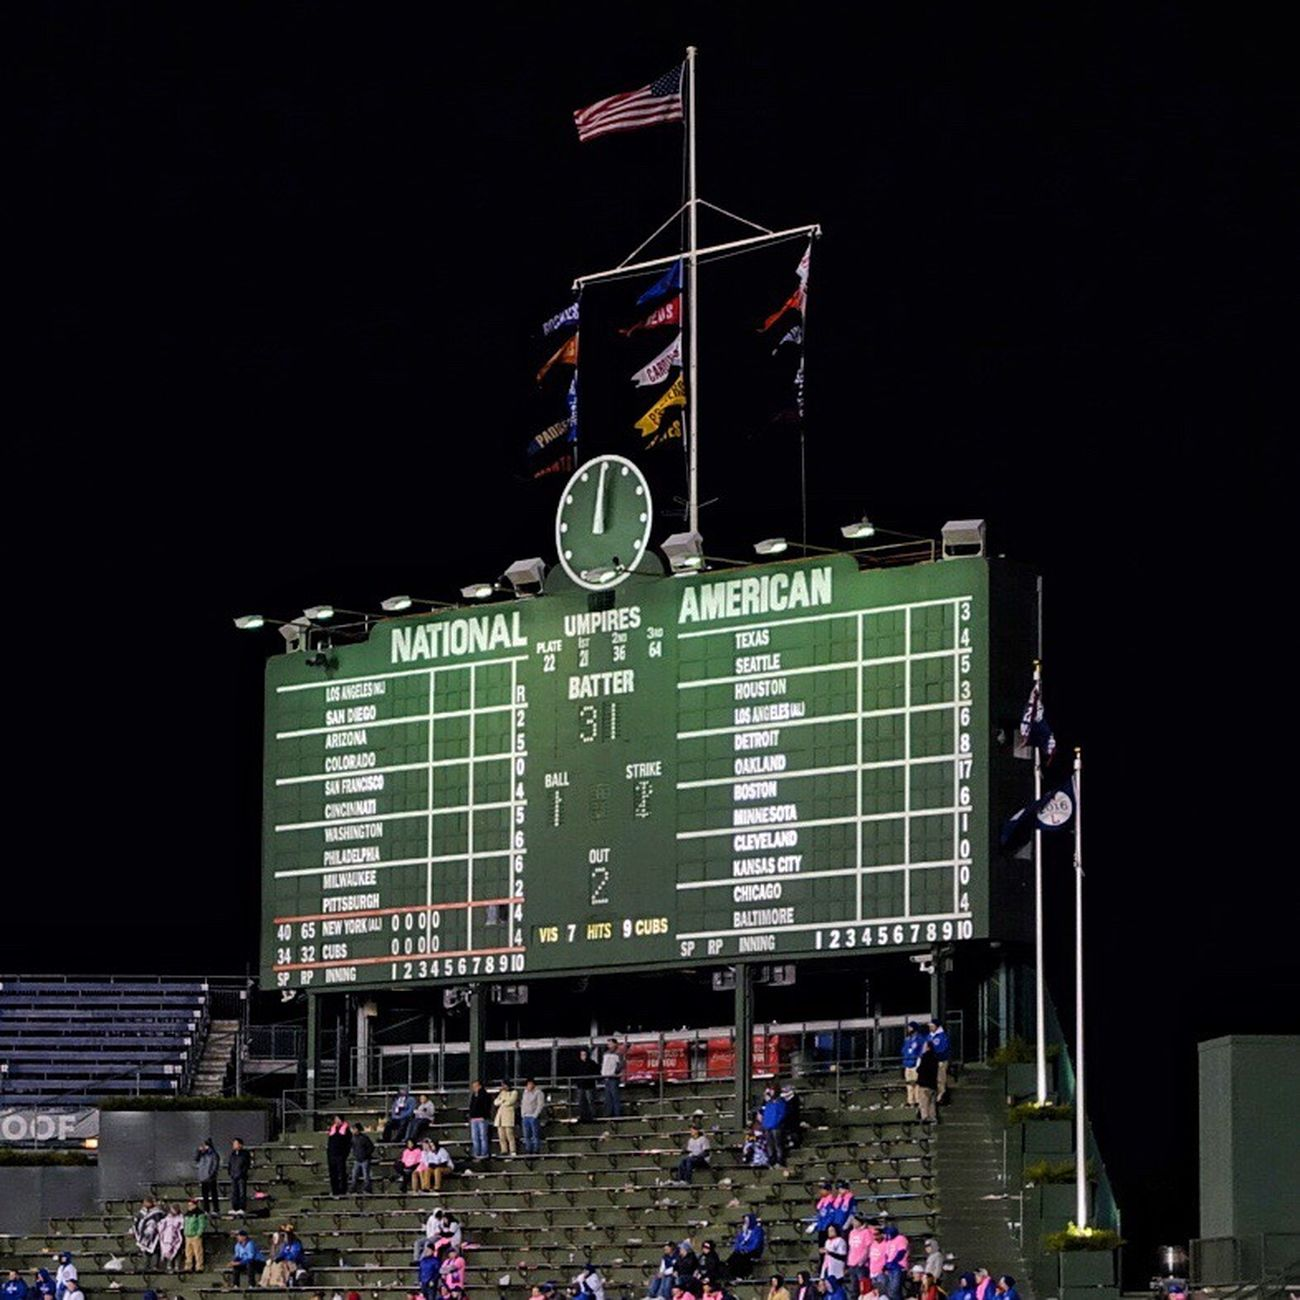 The clock strikes midnight and the game goes on into the bottom of the 15th inning tied at 4 Chicago Cubs  Yankees Baseball